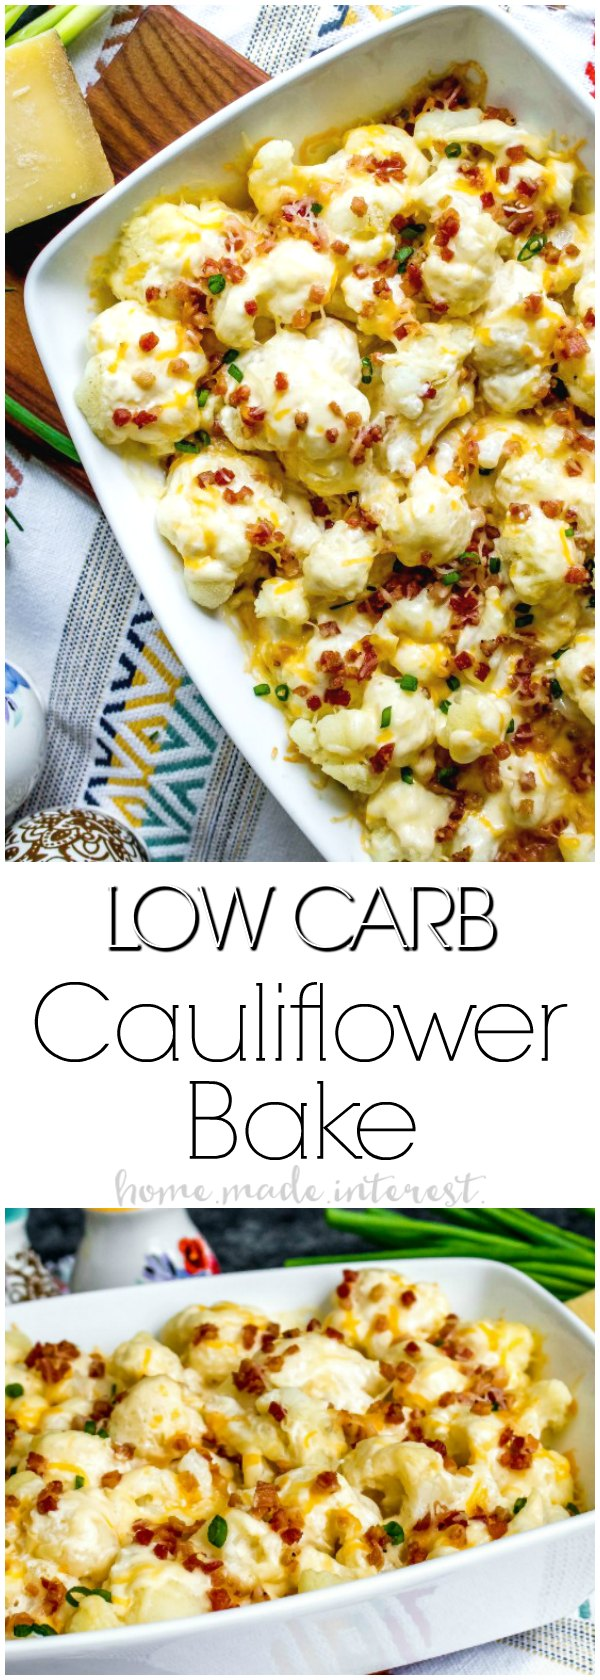 Low Carb Loaded Cauliflower Casserole | This is an easy low carb side dish recipe that make a great keto side dish recipe for Thanksgiving or Christmas! Low Carb Loaded Cauliflower Casserole is full of cheese and bacon and gives you all of the great tastes of a loaded potato dish without all of the carbs!